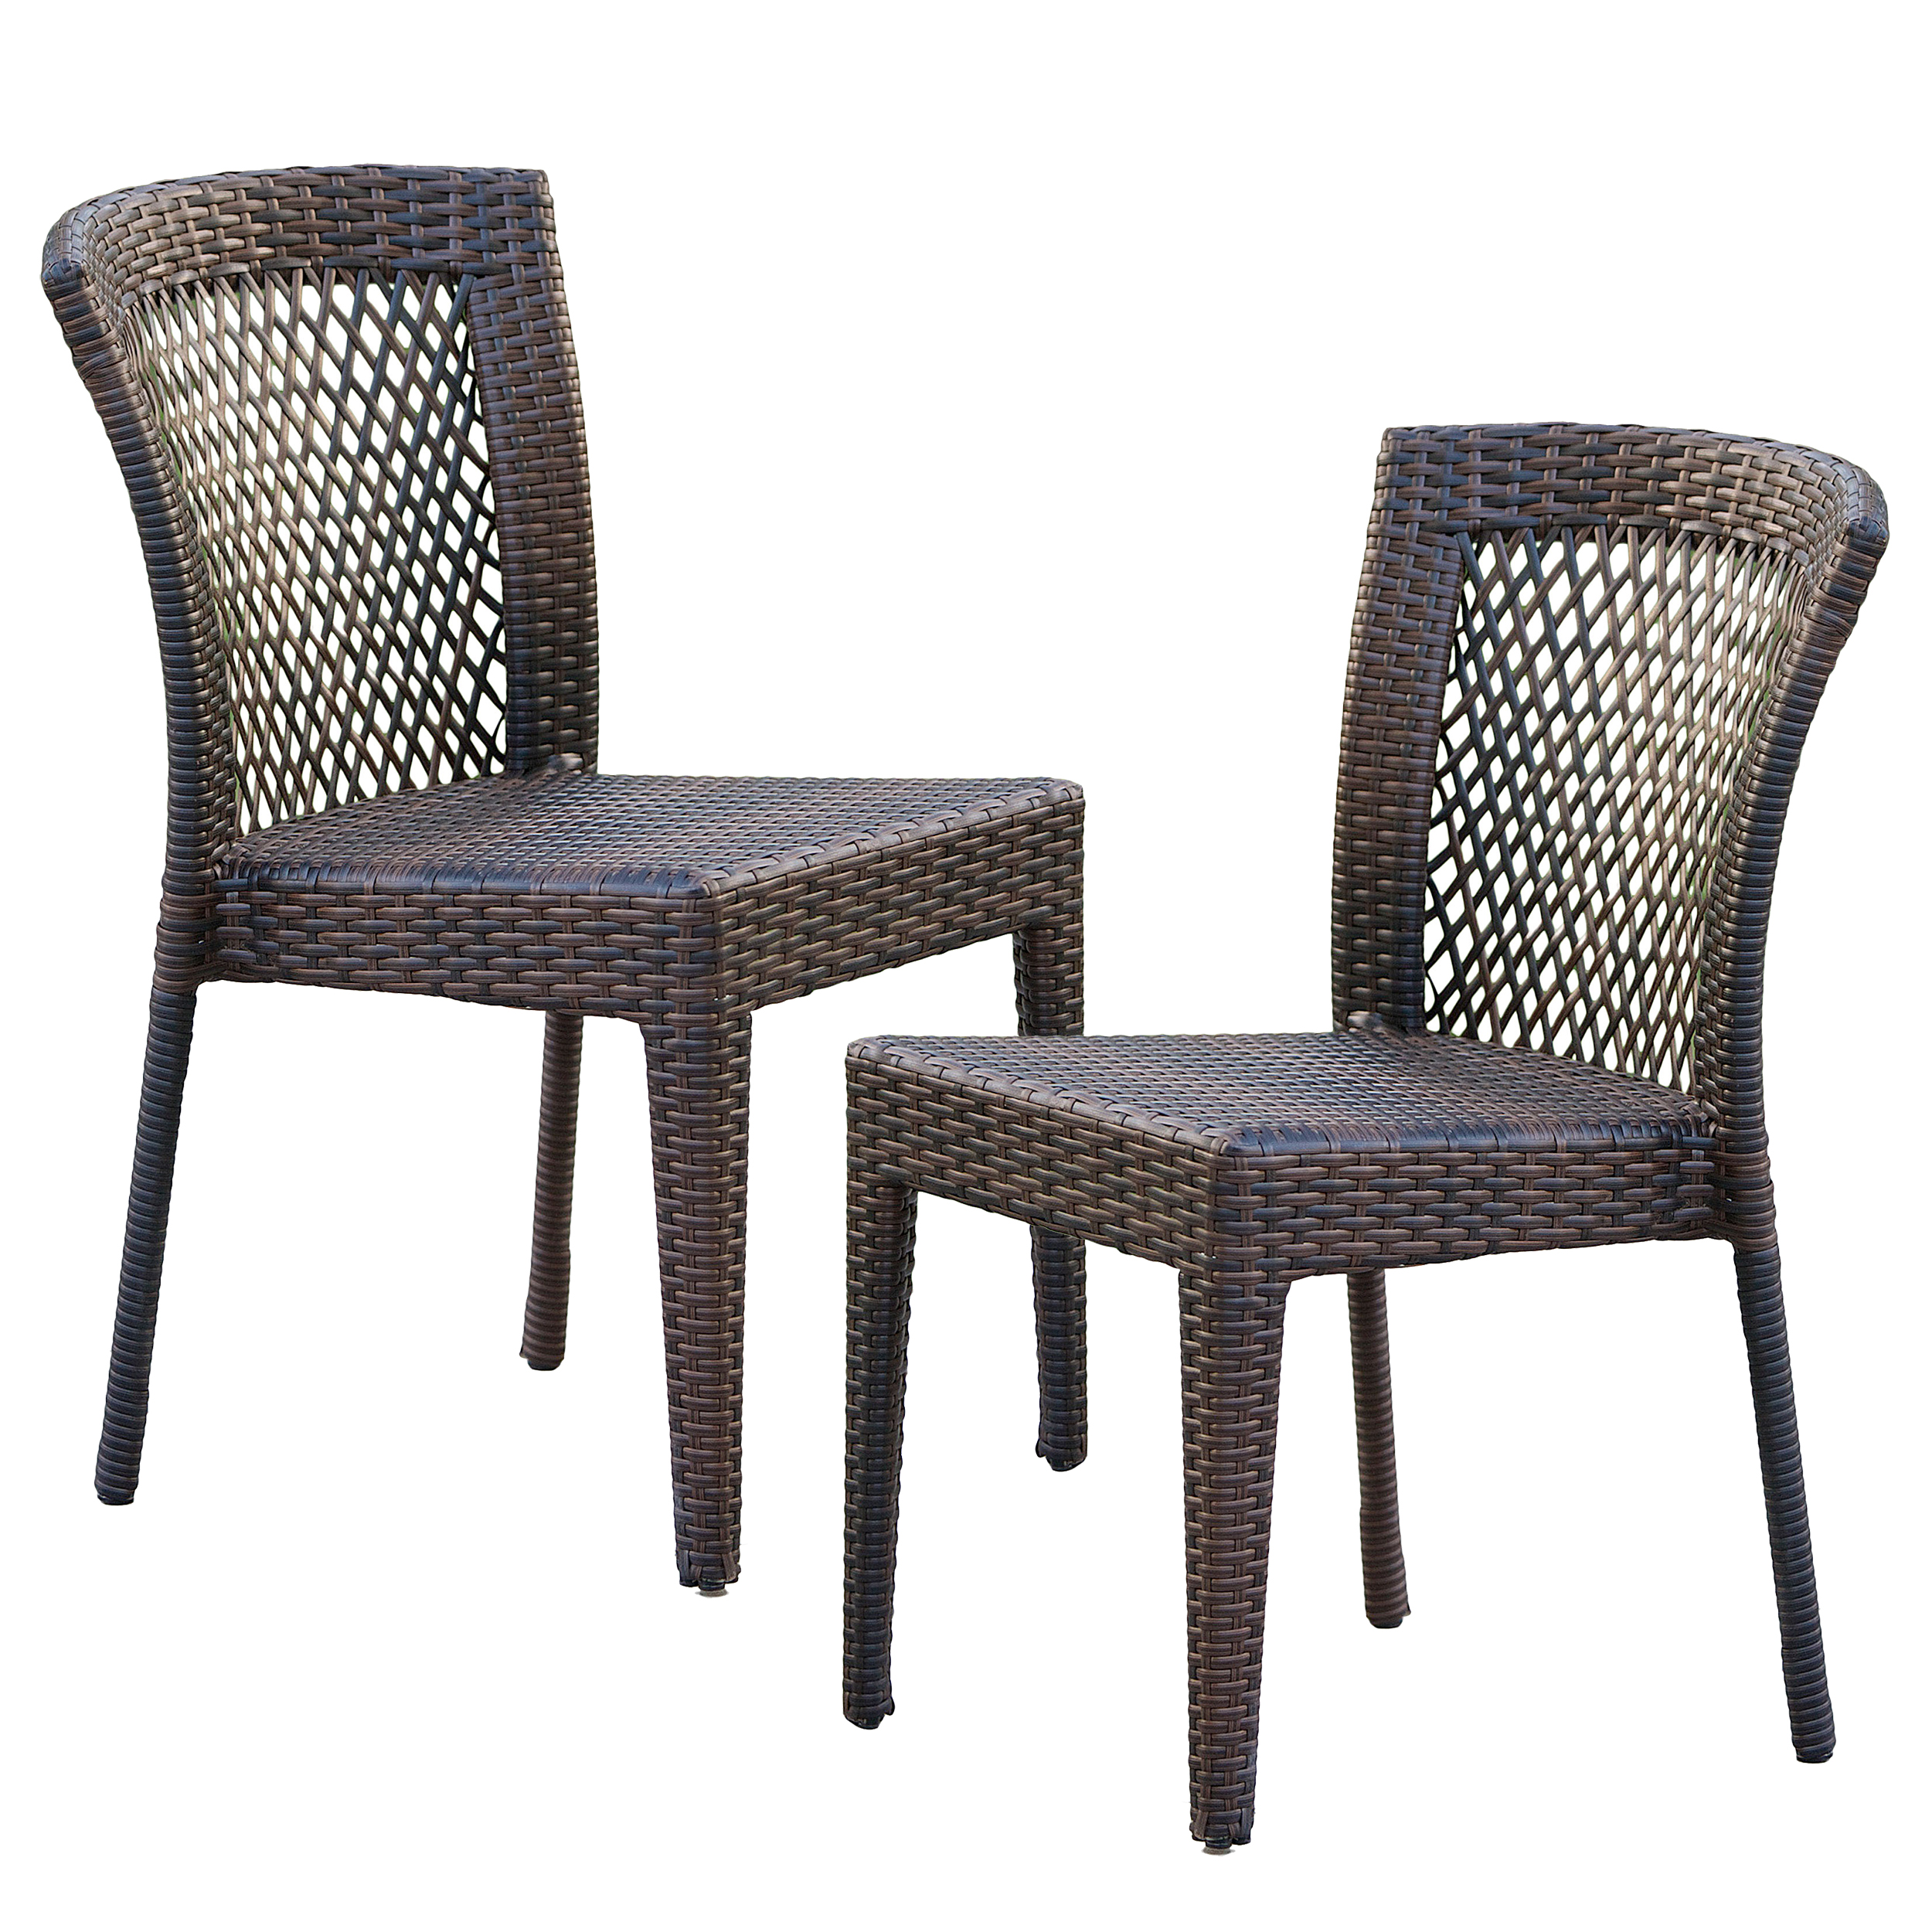 Dawn Outdoor Wicker Chairs (Set of 2)